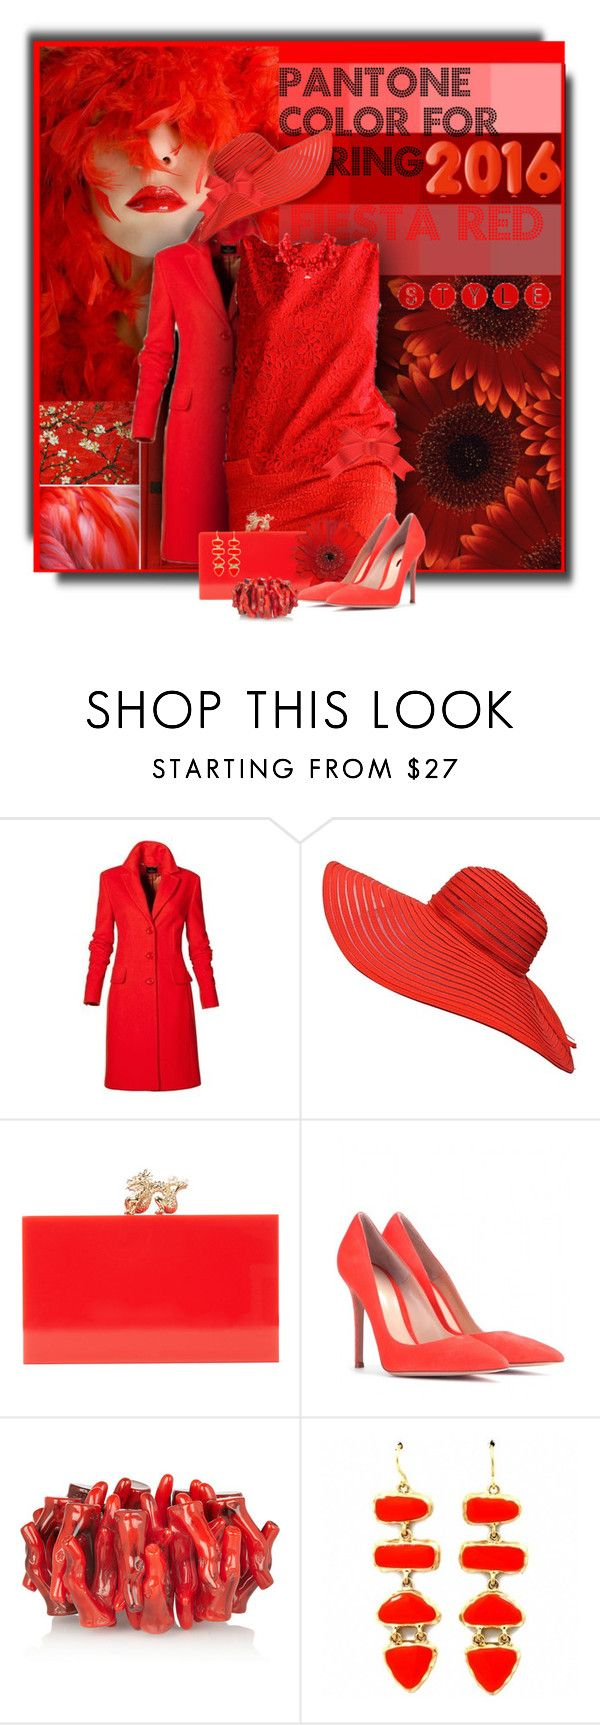 Fiesta Red...Pantone Color for Spring 2016 by cathy1965 on Polyvore featuring Gianvito Rossi, Charlotte Olympia, Kenneth Jay Lane and Fantasy Jewelry Box